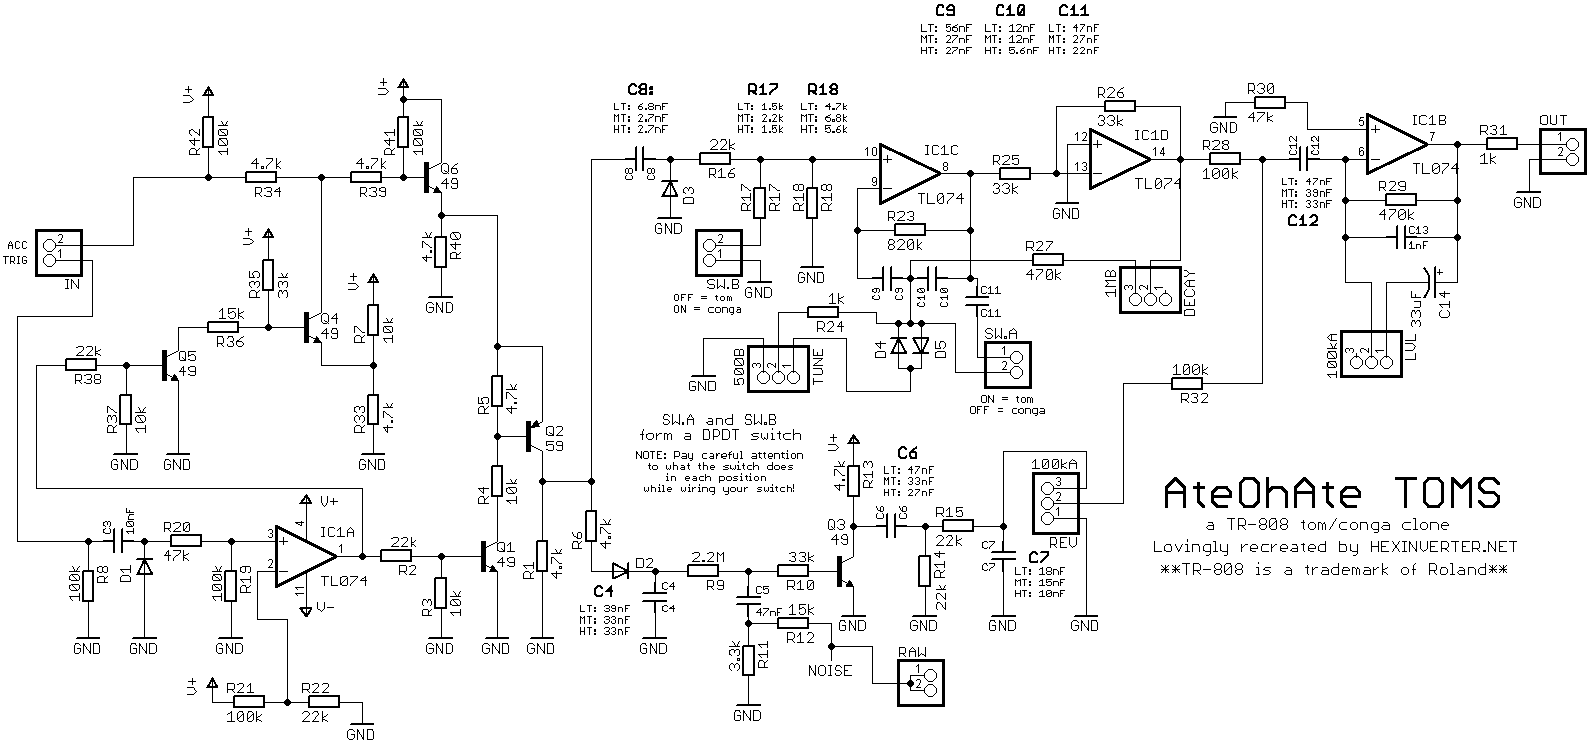 AteOhAte_TOMS_schematic_v1.png